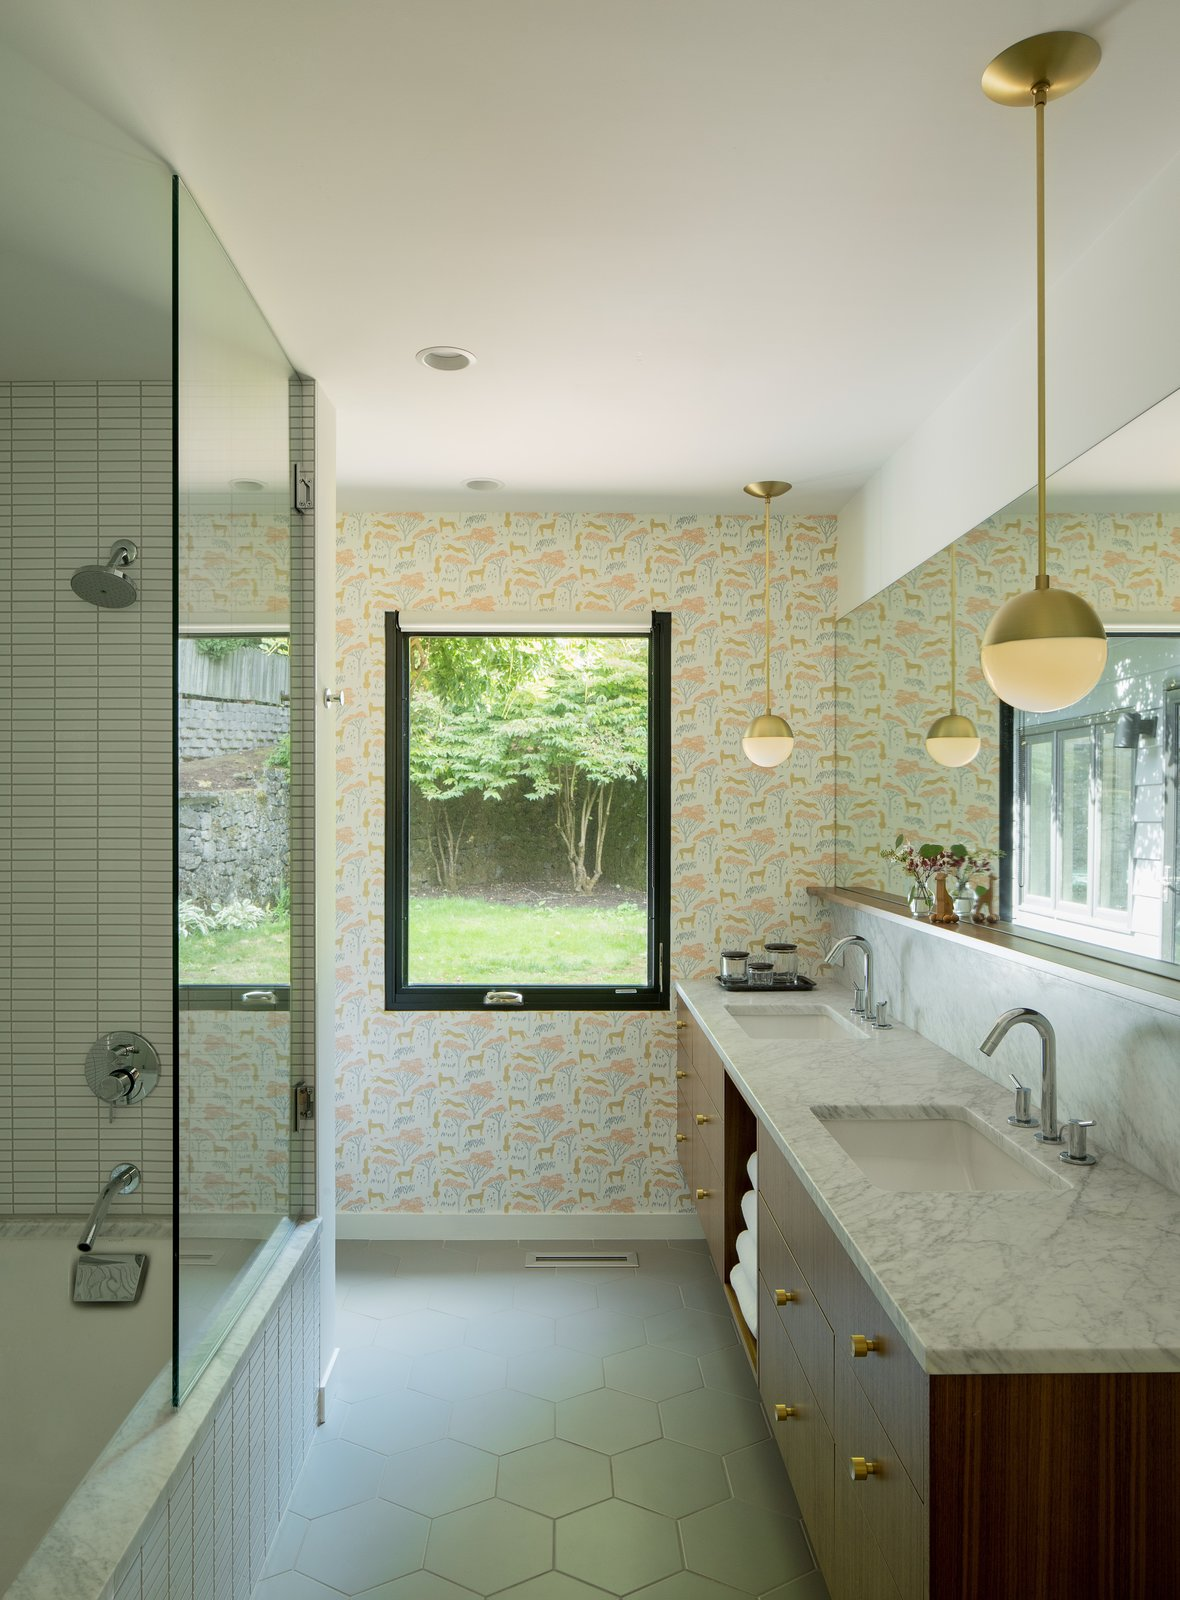 Bath, Porcelain Tile, Pendant, Marble, Undermount, Open, Undermount, Recessed, and Full Now, the space looks both sophisticated and playful thanks to the addition of whimsical animal-printed wallpaper, marble countertops, tiles from Ann Sacks, and brass pendant lights designed by Cedar & Moss for Rejuvenation.    Best Bath Undermount Pendant Porcelain Tile Photos from Before & After: A 1950s Midcentury Abode Gets a Gorgeous Upgrade